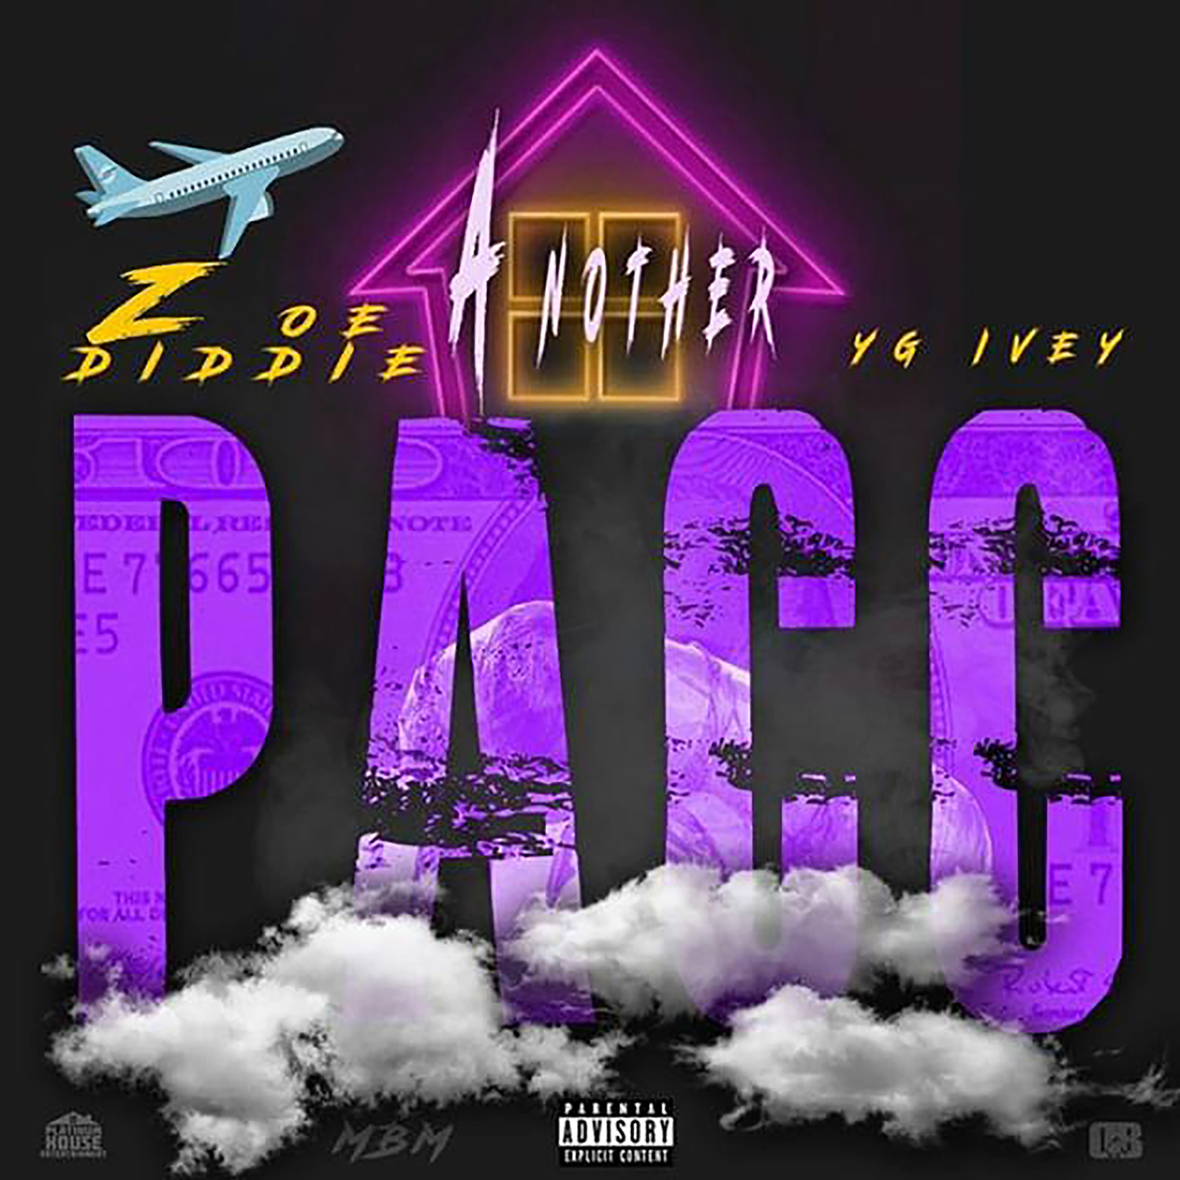 another pacc front